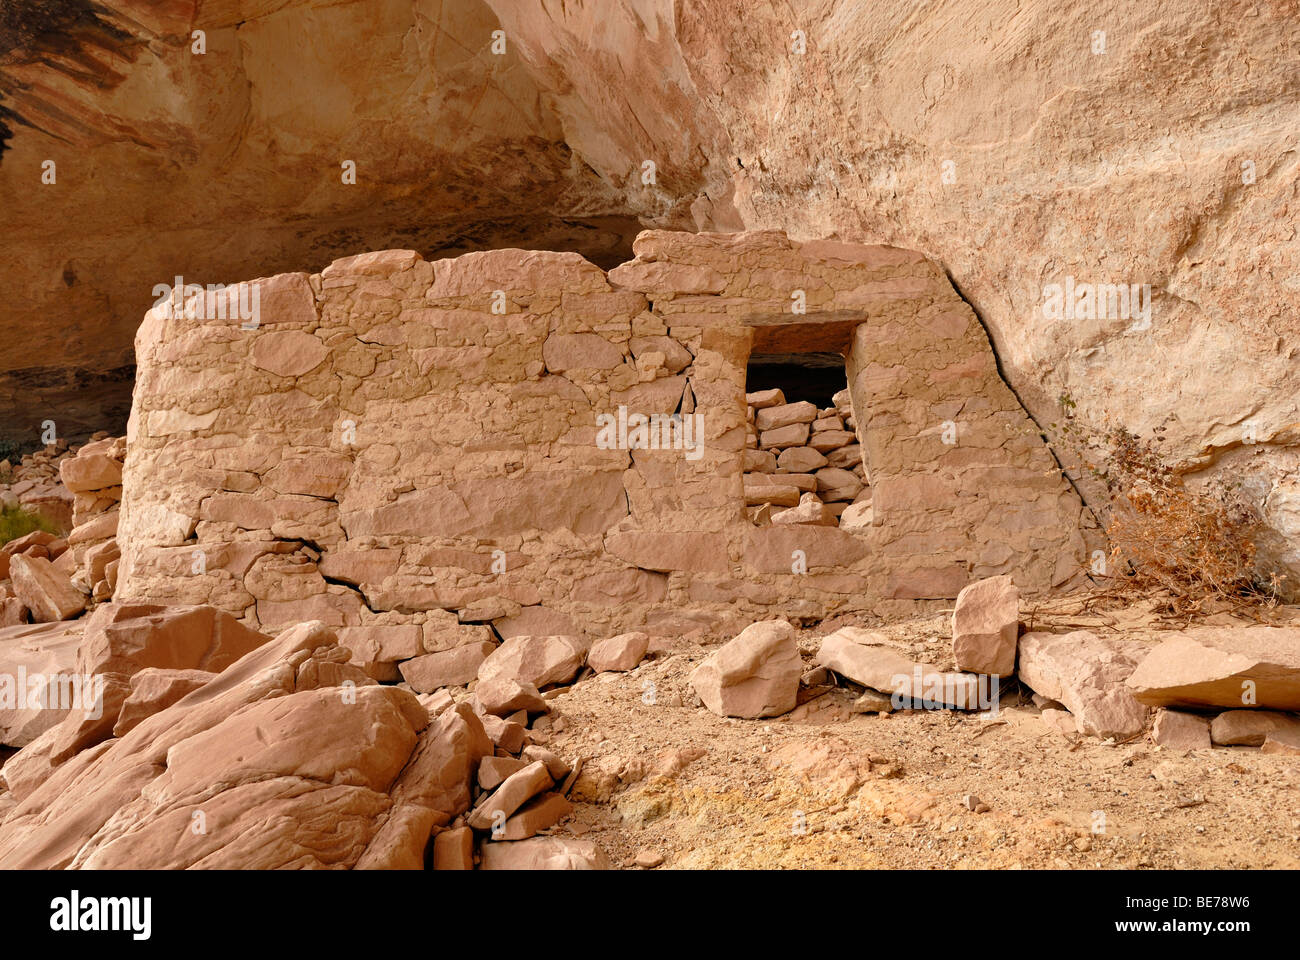 Historic remnants of a dwelling of the Anasazi Indians, about 900 years old, Cold Springs Cave near Bluff, Utah, - Stock Image